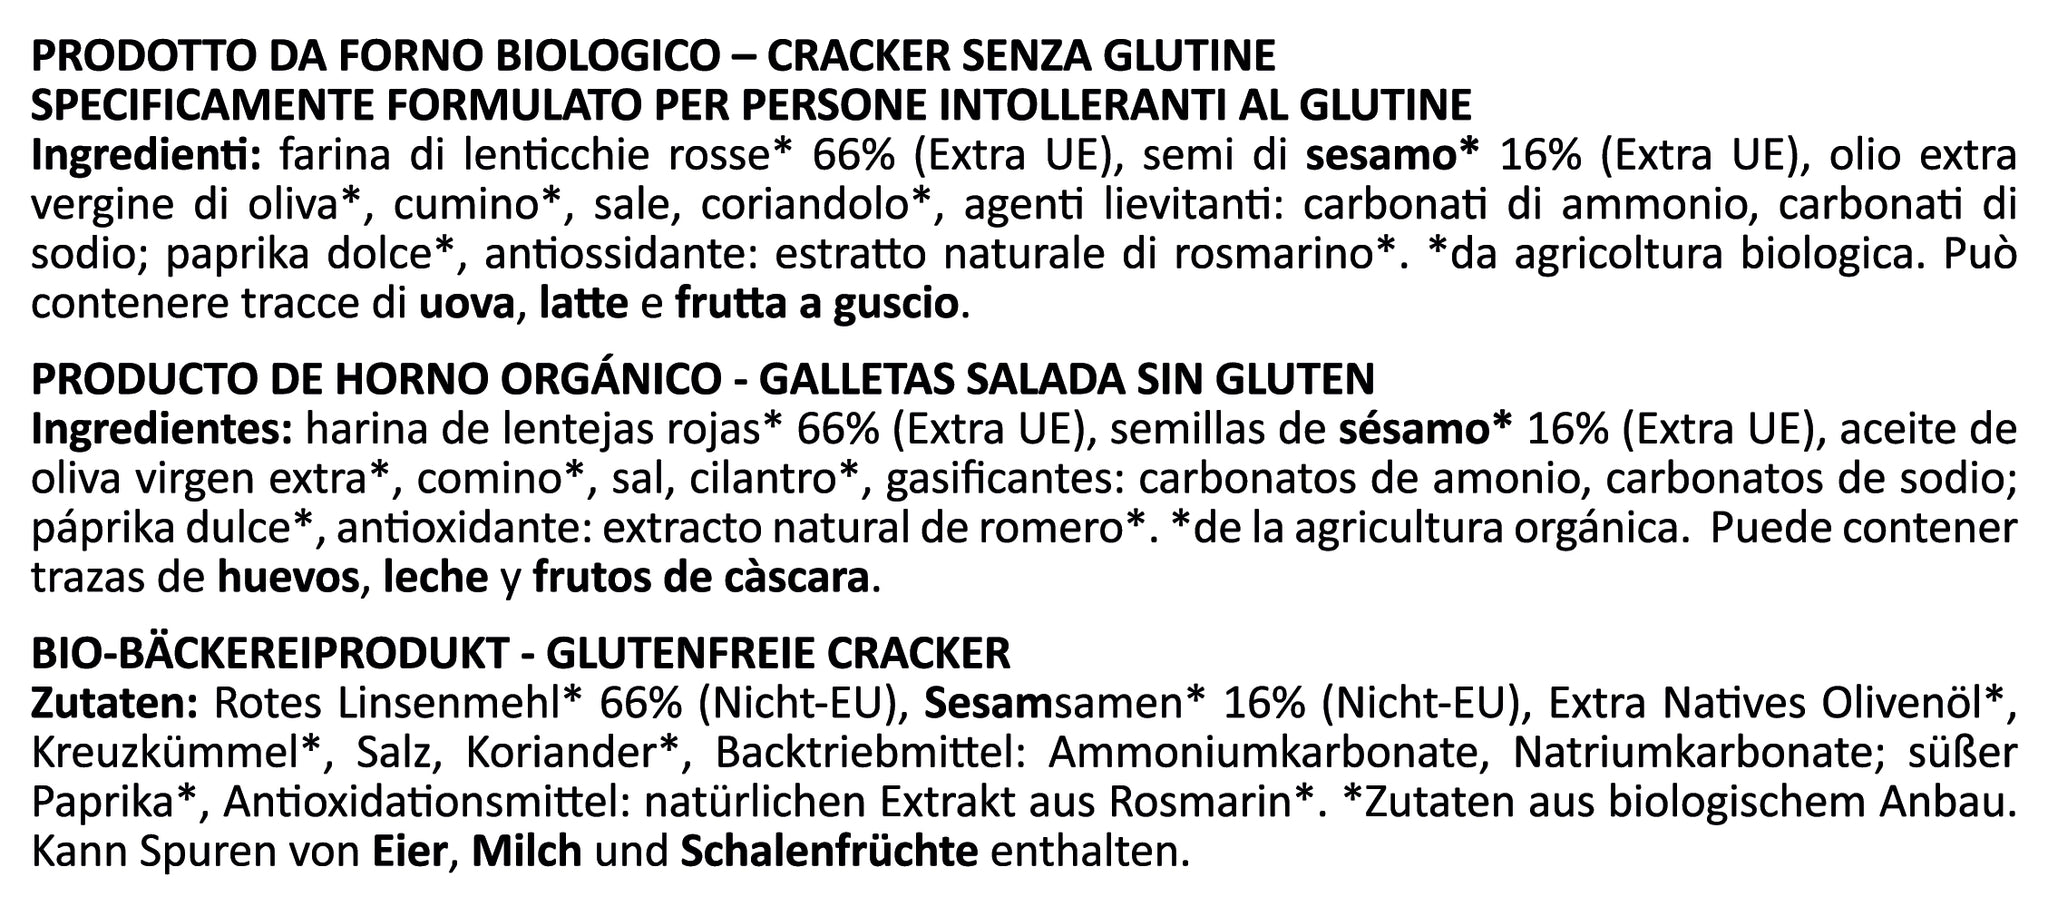 Legume Crunch di Lenticchie Rosse Biologico - Farmo - Eat a better life